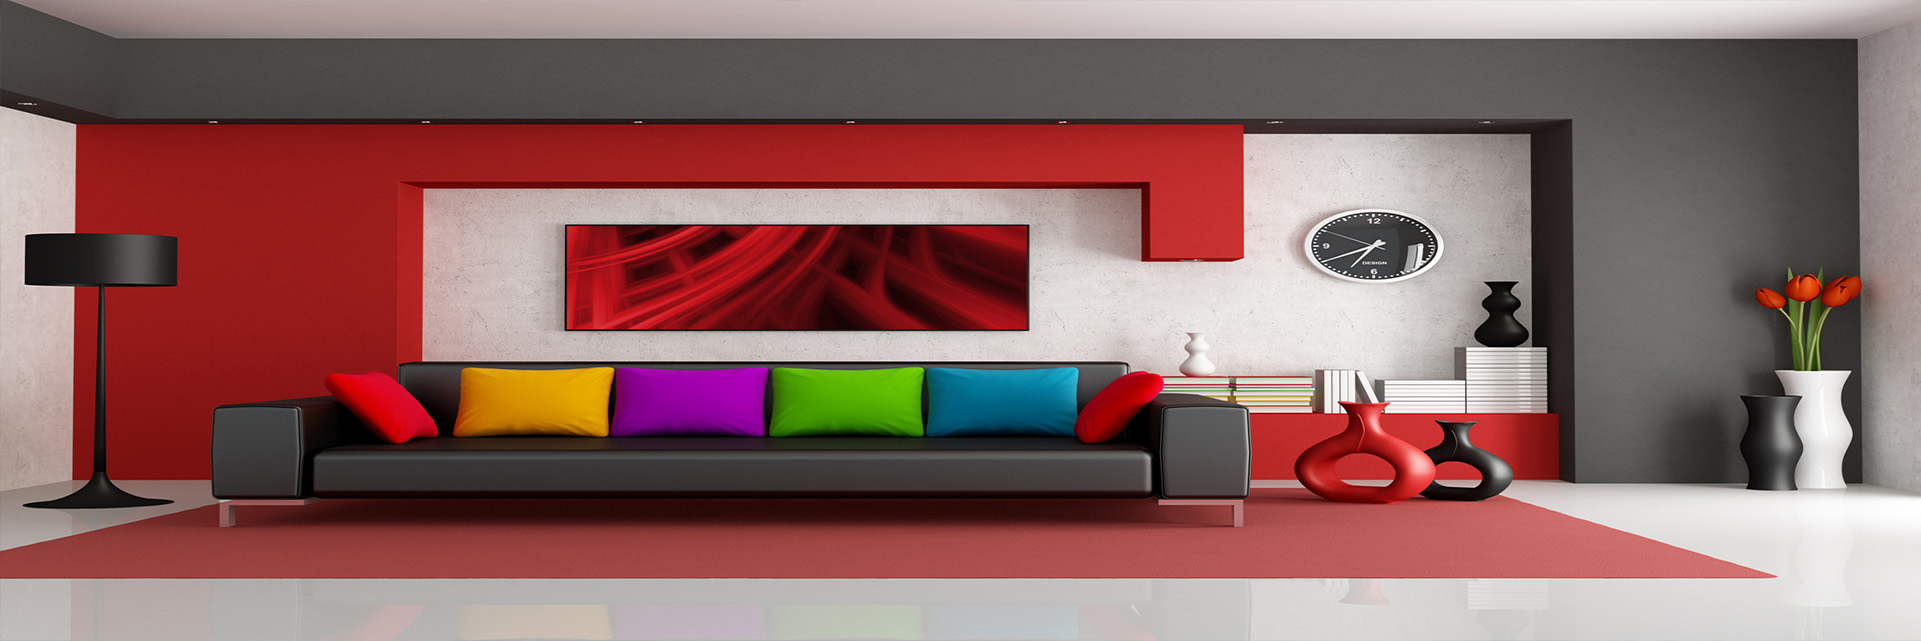 Bsc Interior Designing College In Bangalore India